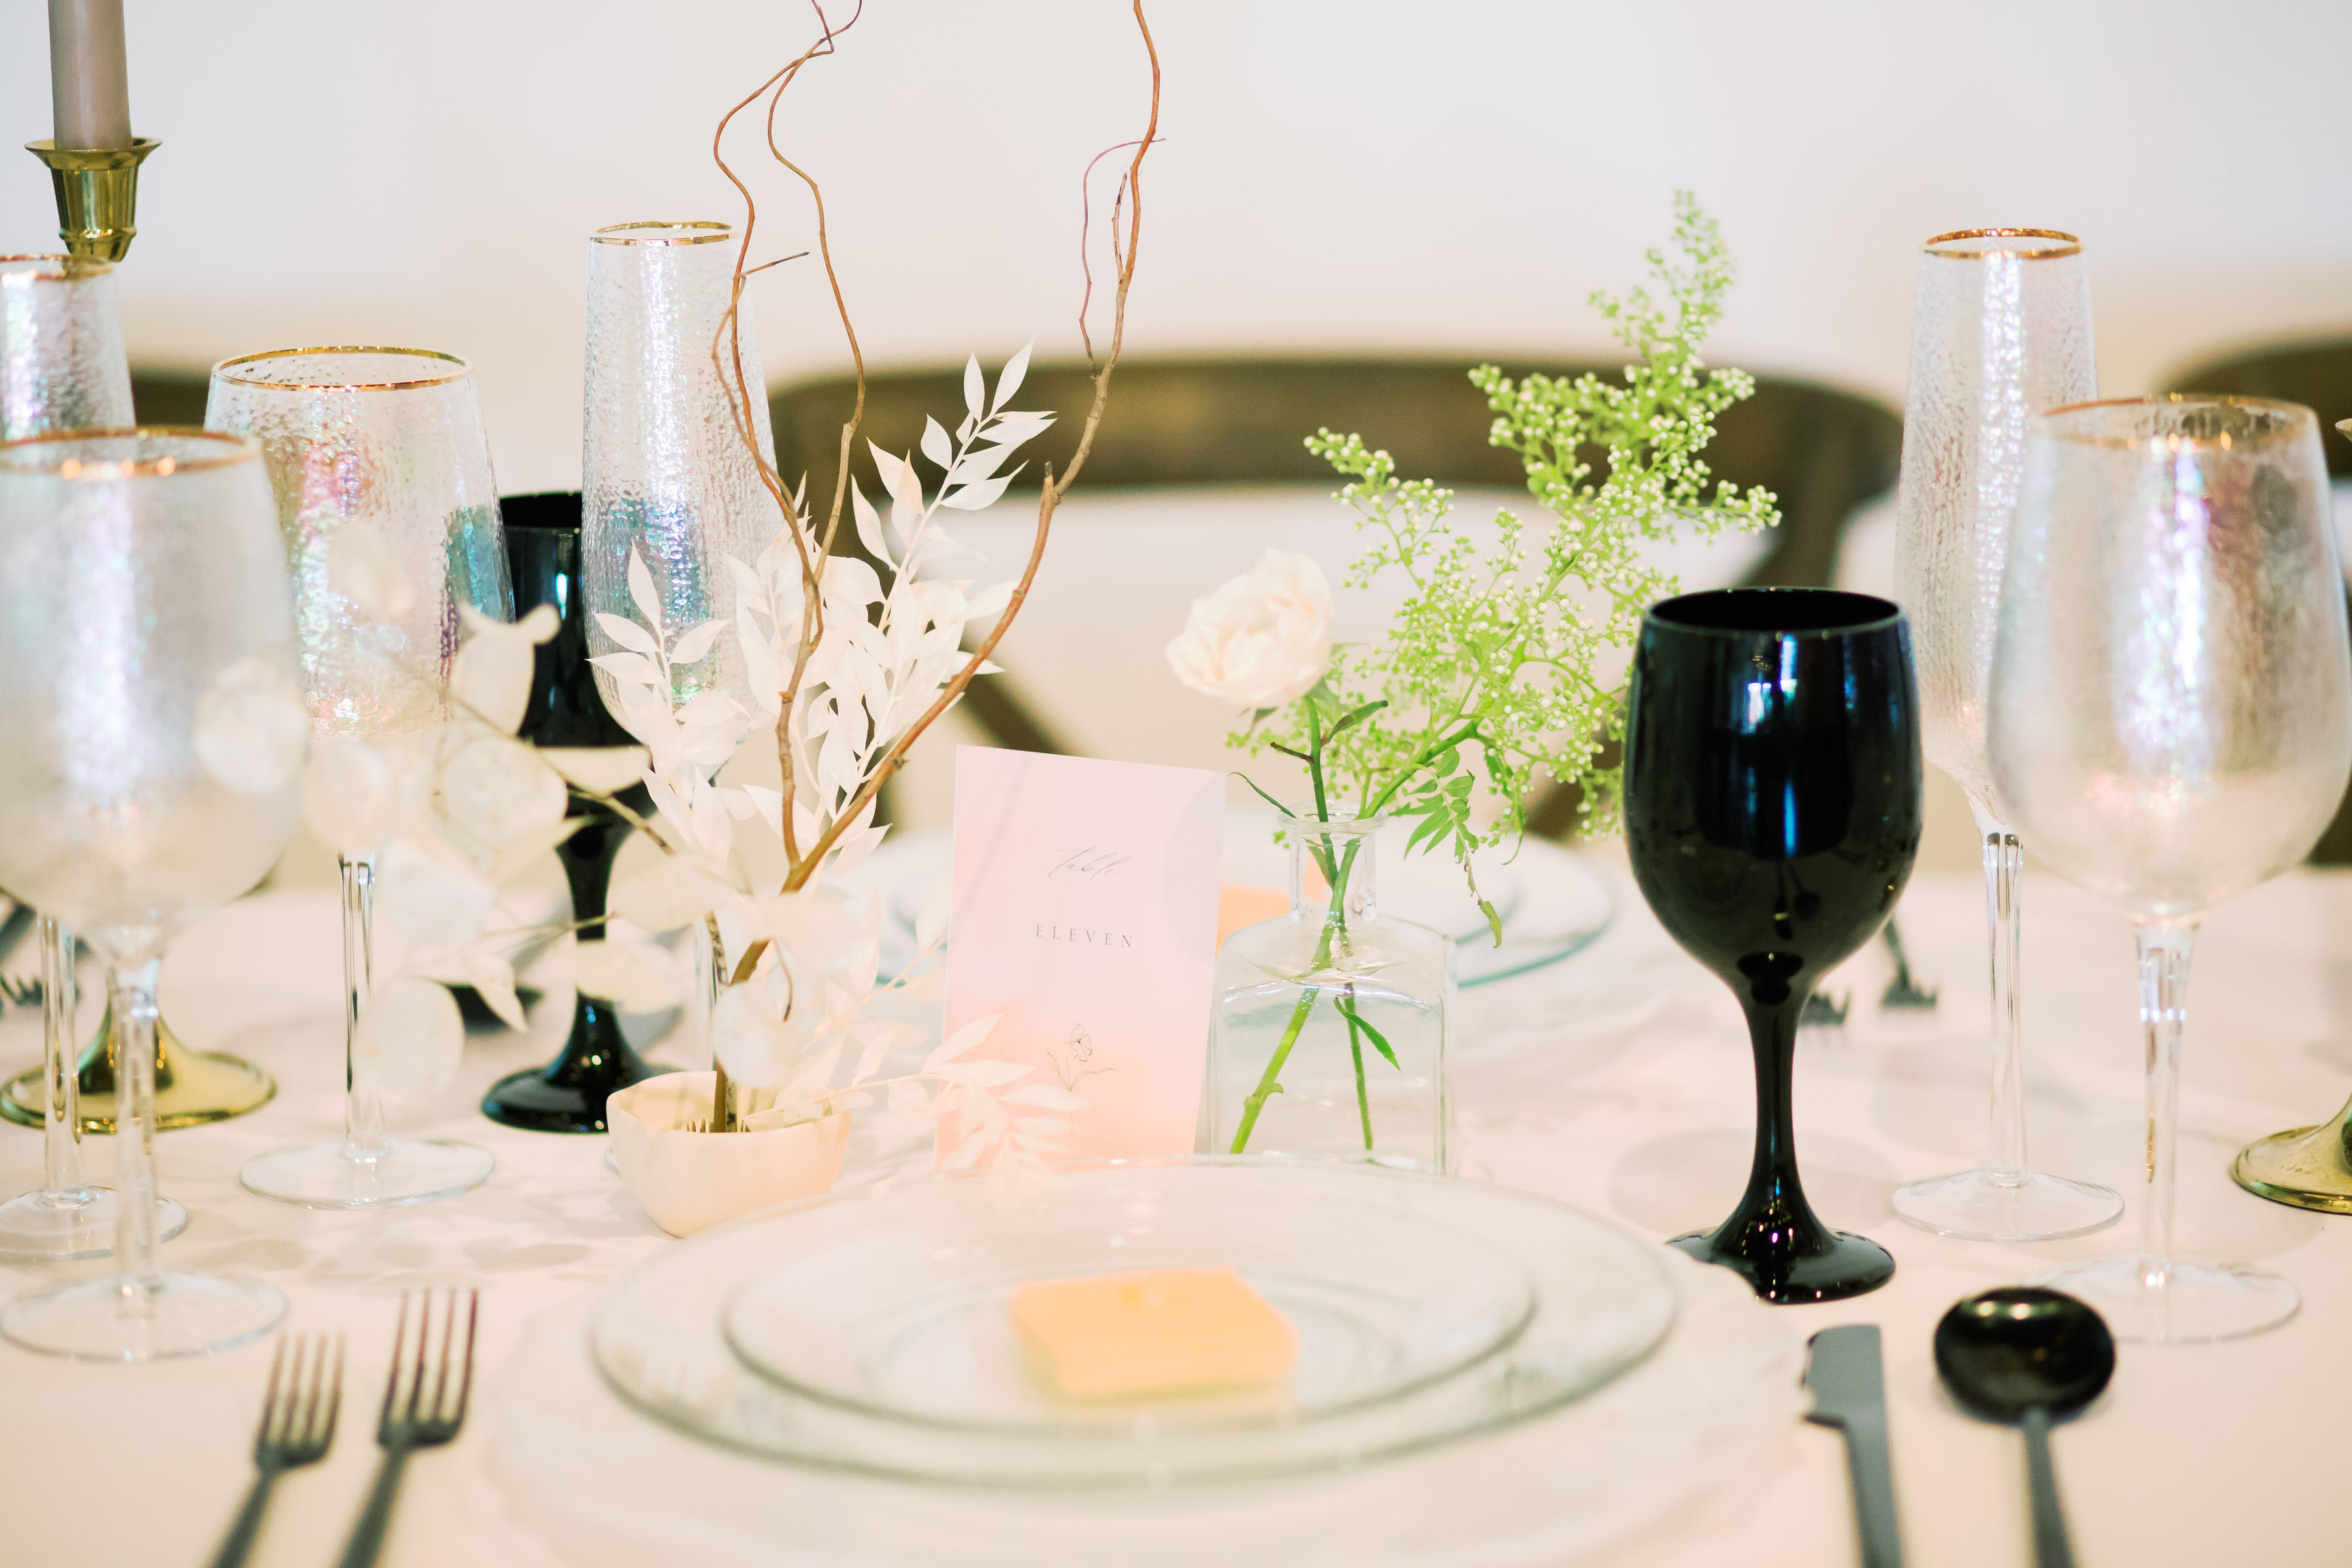 Dinner Party Styled Shoot Image 3